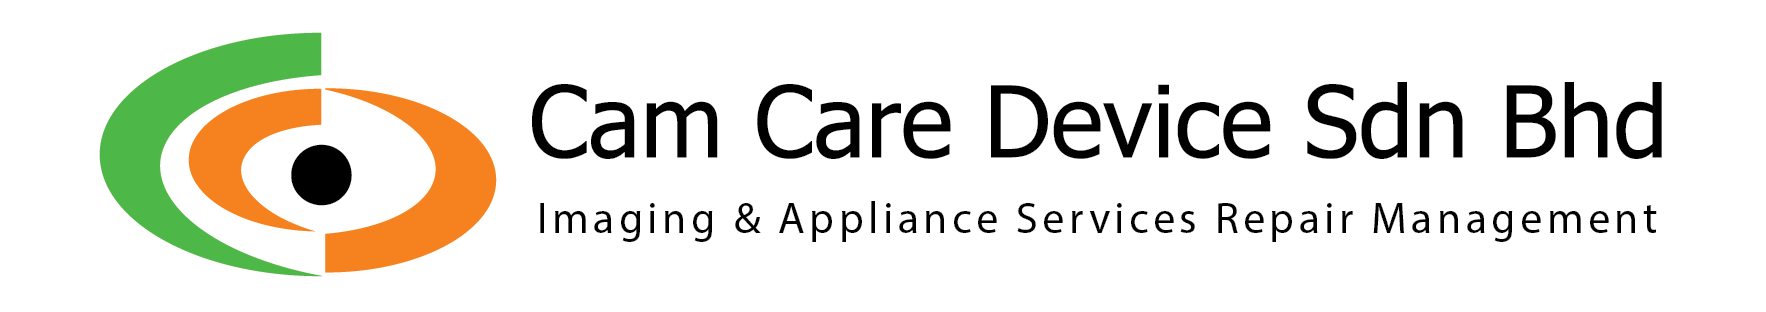 Cam Care Device Sdn. Bhd.